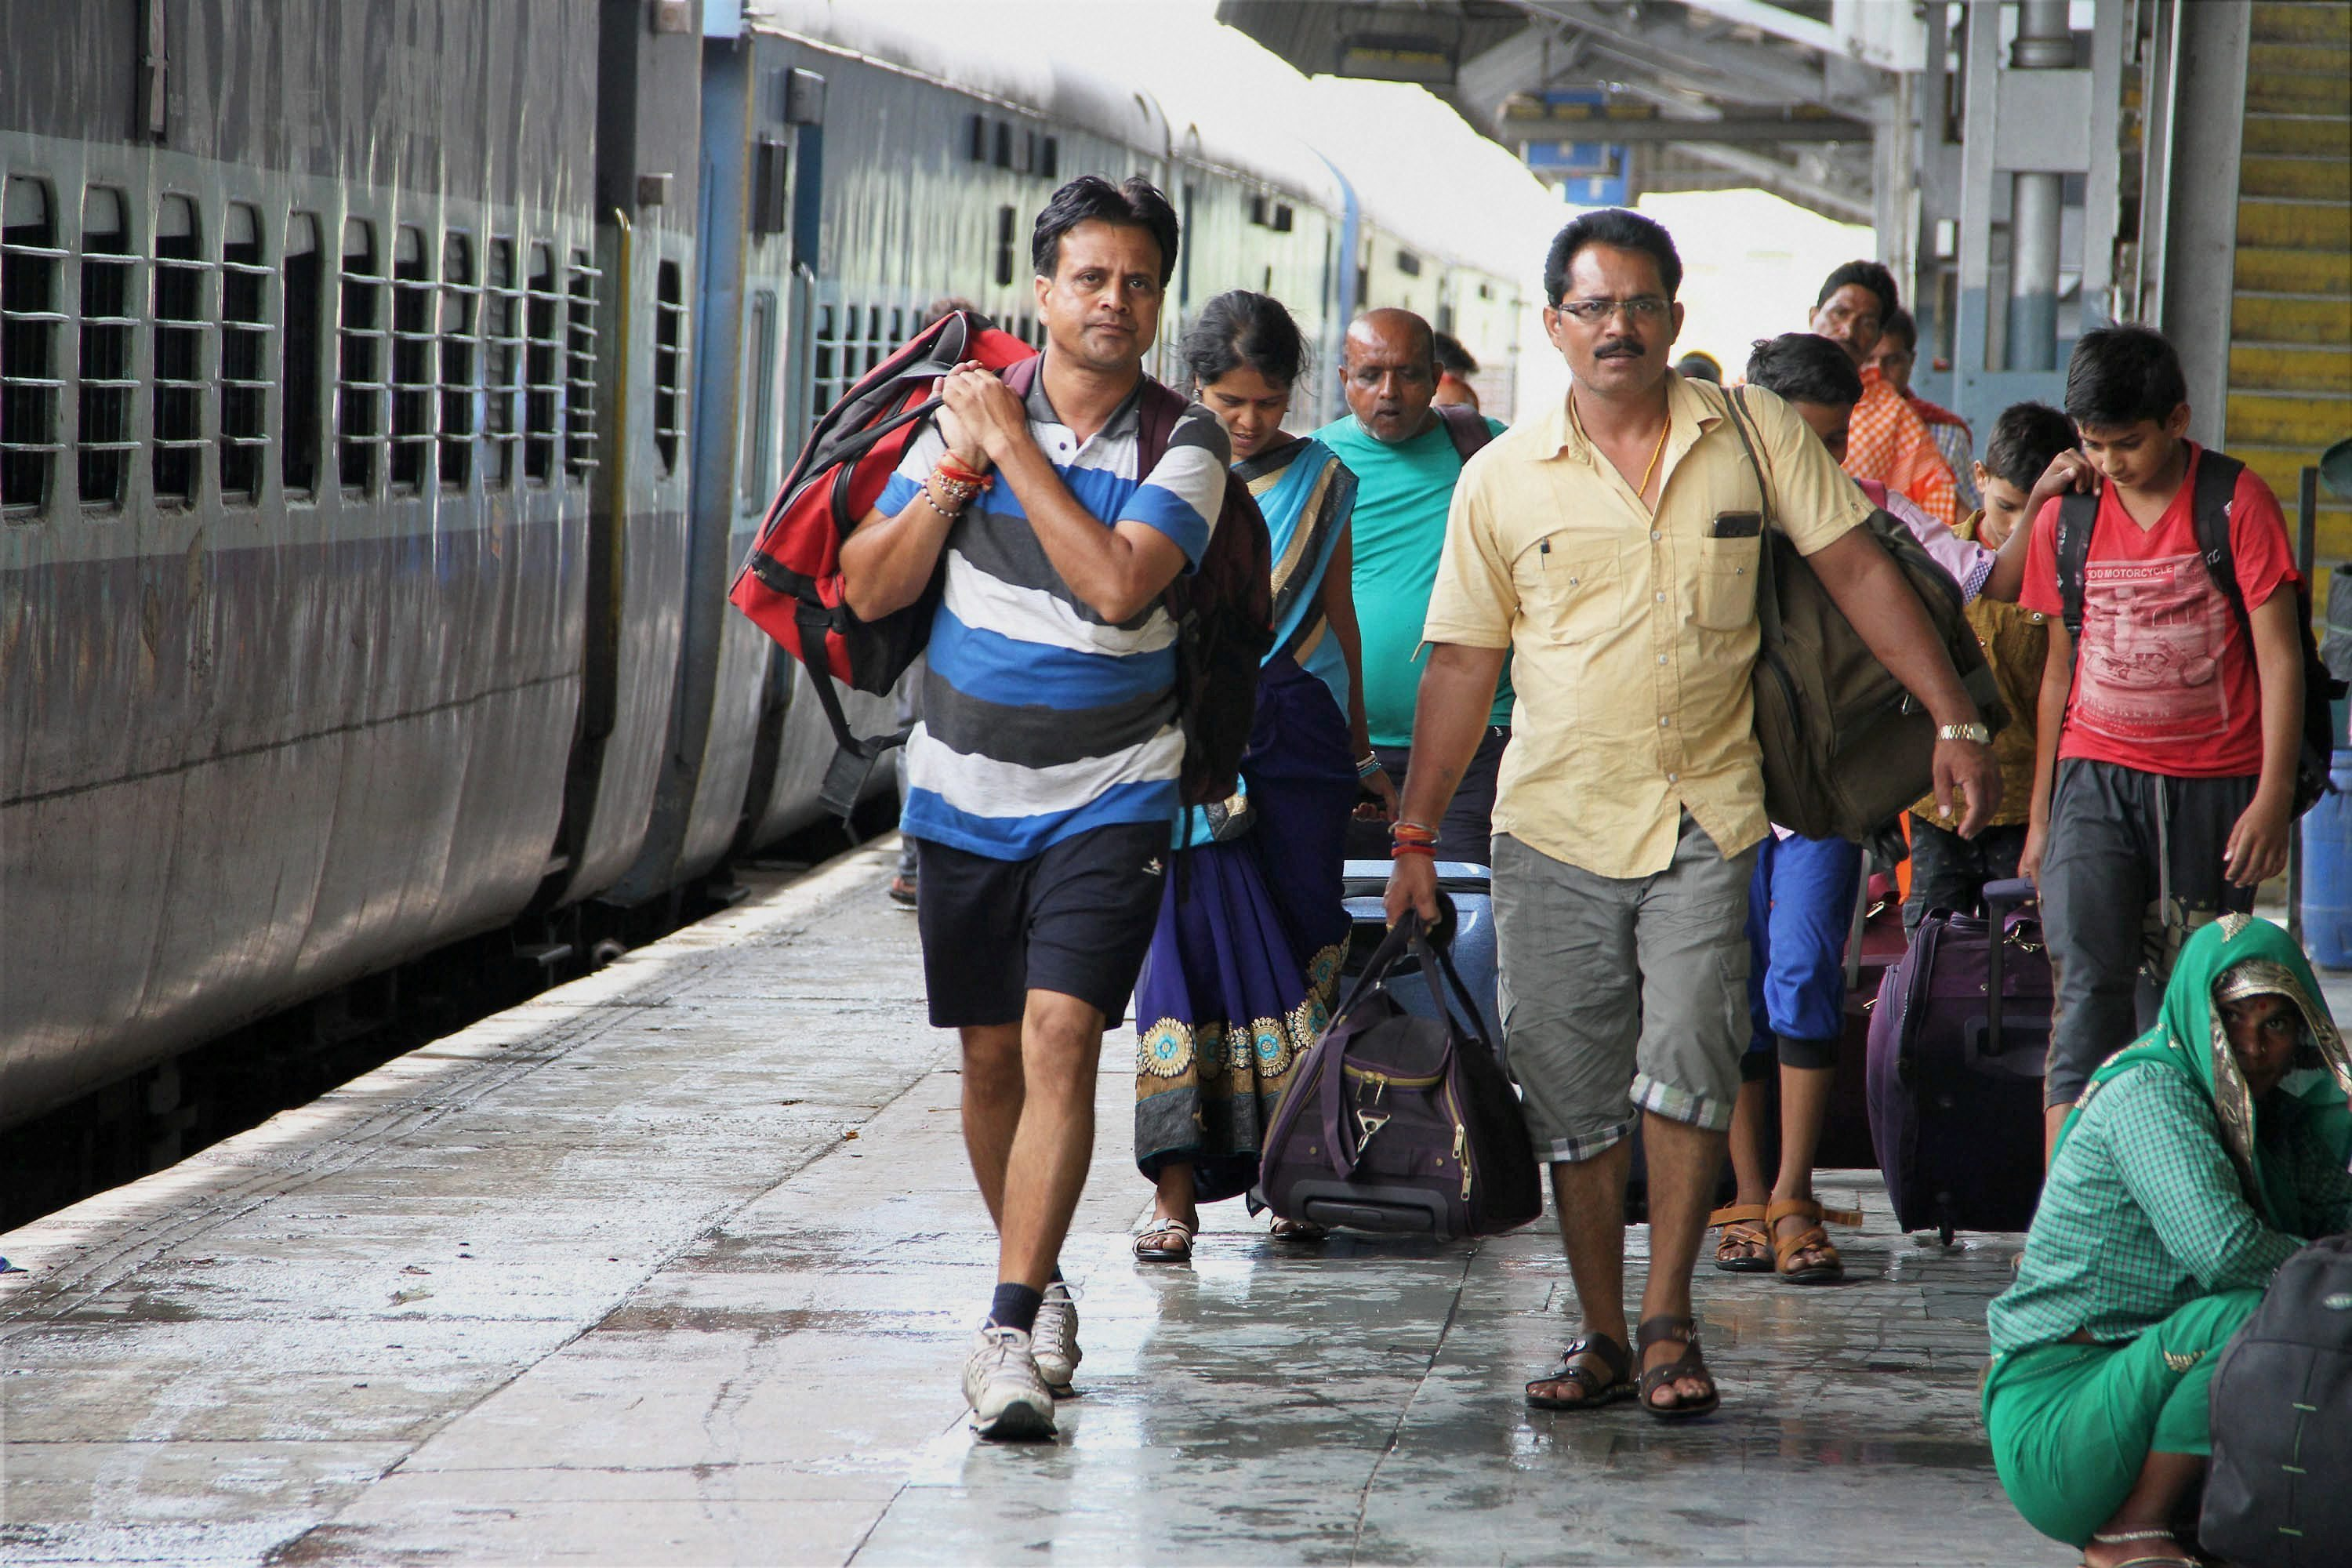 Jammu: Stranded passengers at a railway station in Jammu after several trains were cancelled in view of the apprehension of unrest due to the verdict in a case against Dera Sacha Sauda Chief Gurmeet Ram Rahim Singh on Friday. PTI Photo (PTI8_25_2017_000067A)